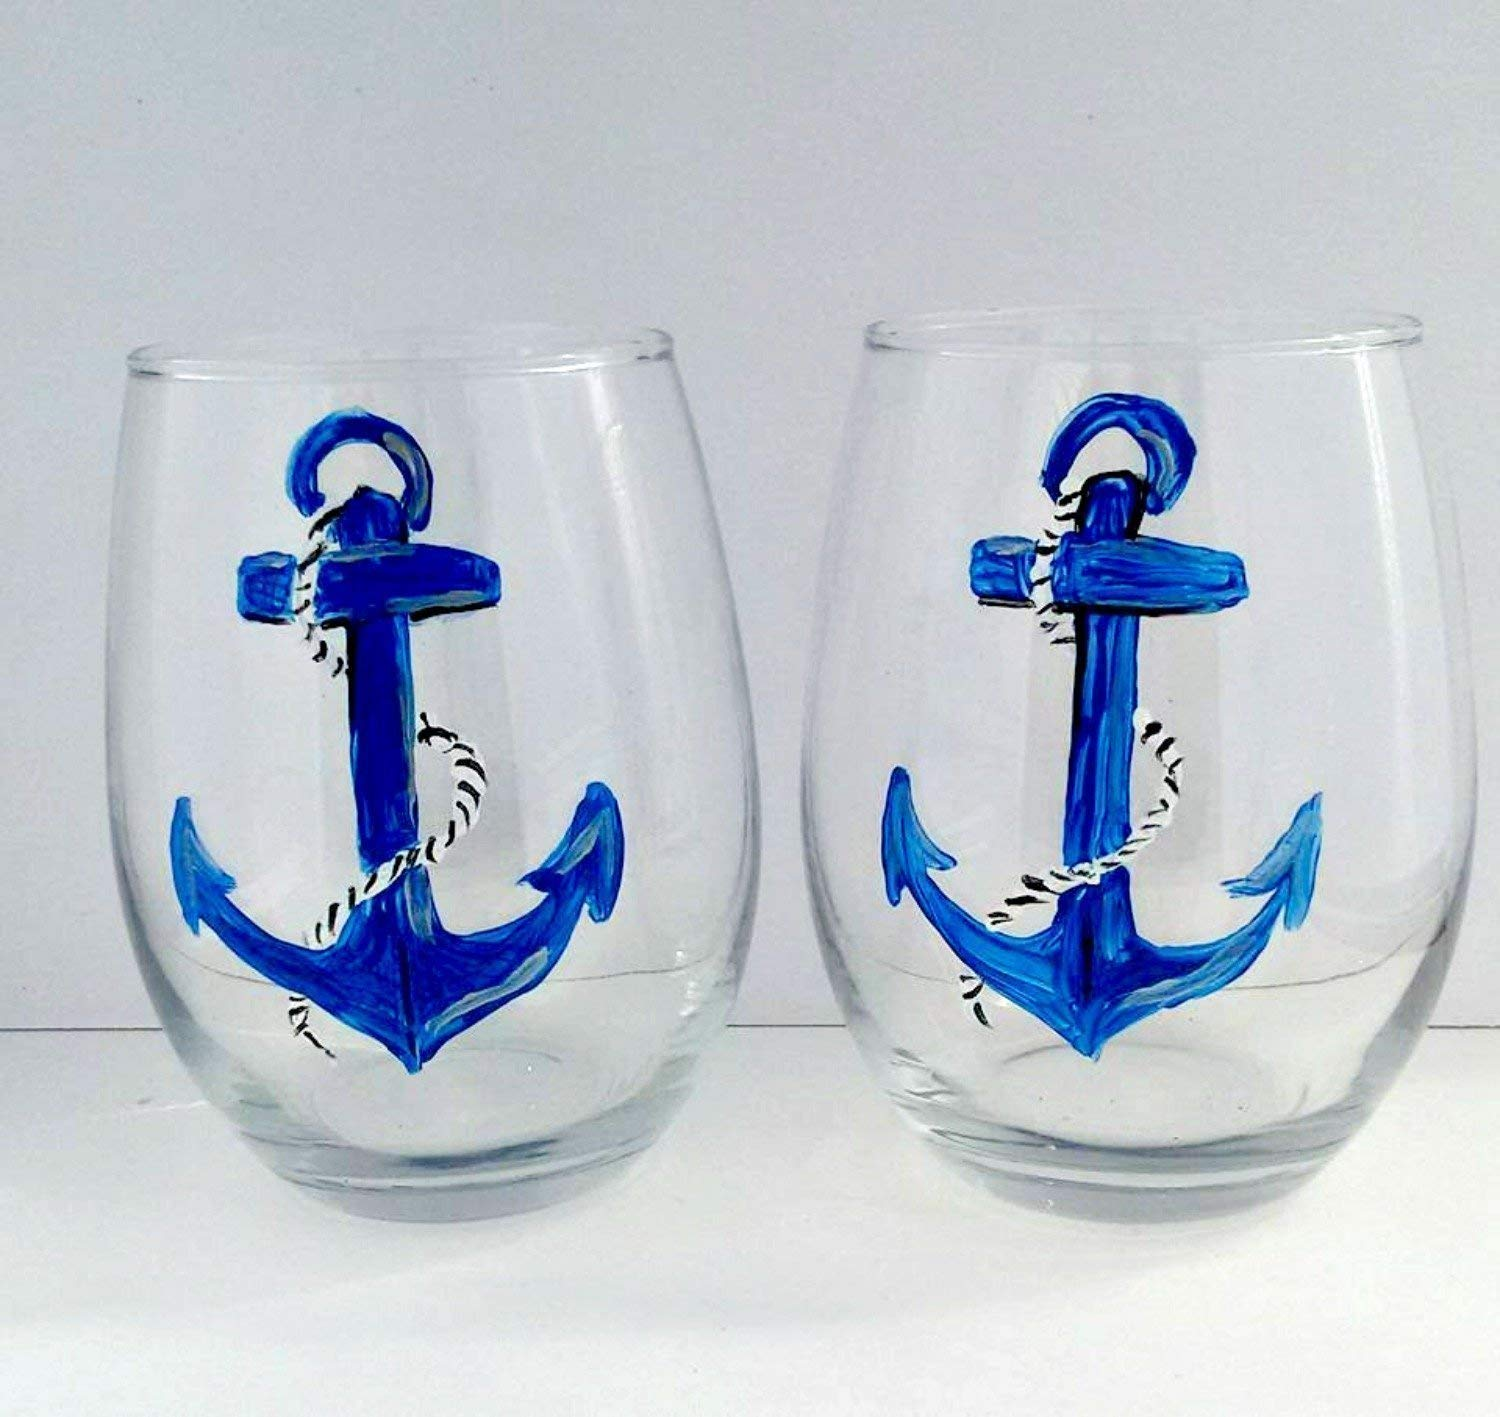 Boat Anchor Navy Blue Hand Painted (Set of 2) Stemless 20 oz. Wine Glasses, Nautical Kitchen Décor by Atkinson Creations